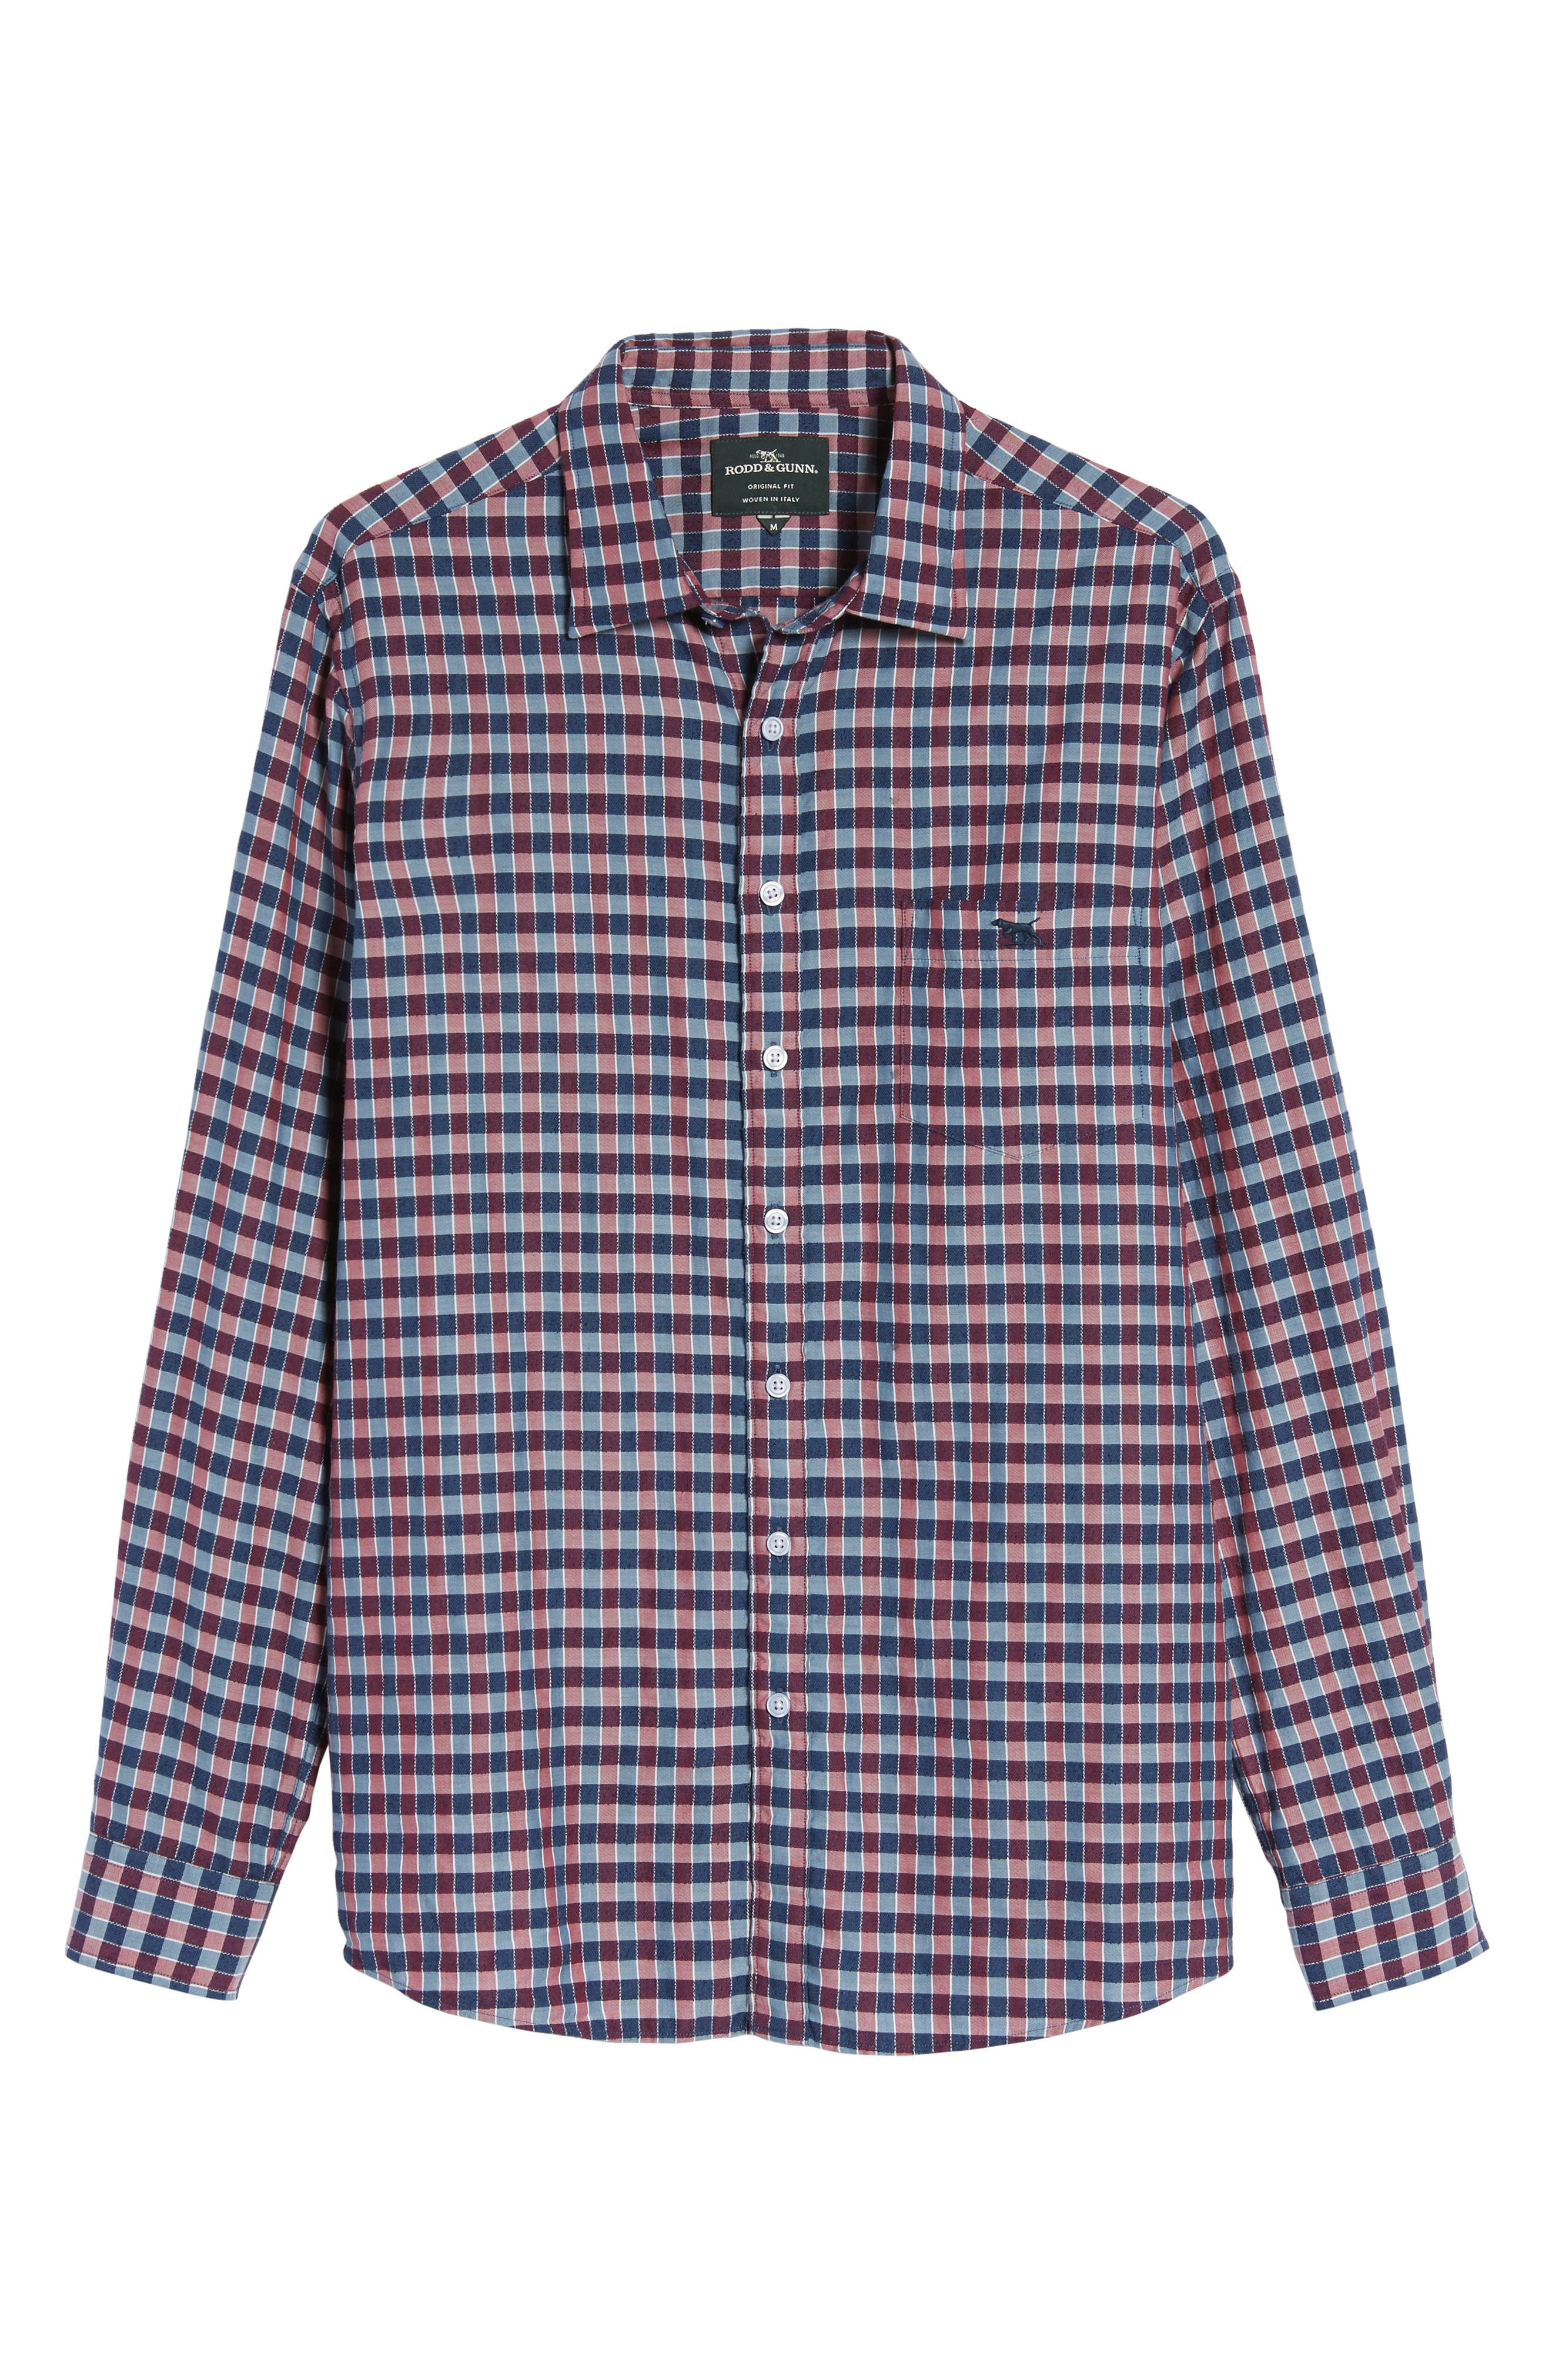 Mandeville Check Sport Shirt,                             Alternate thumbnail 6, color,                             413